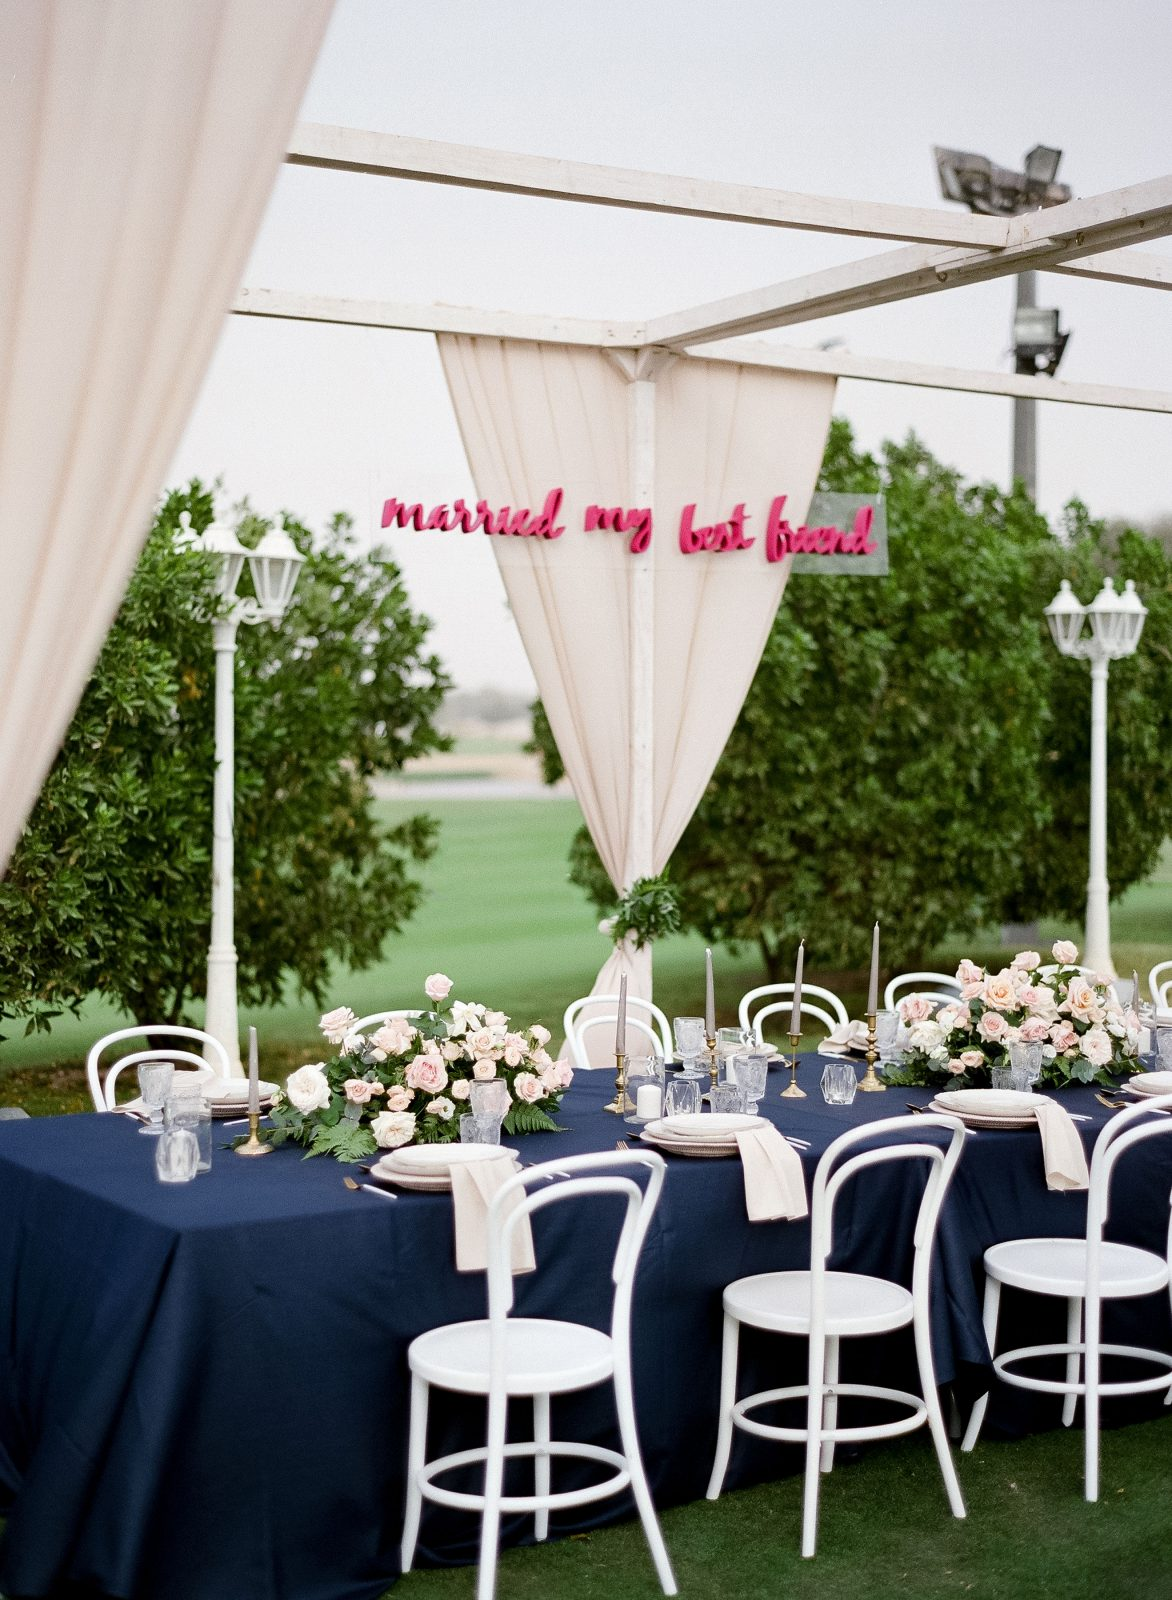 Neon wedding sign inspiration